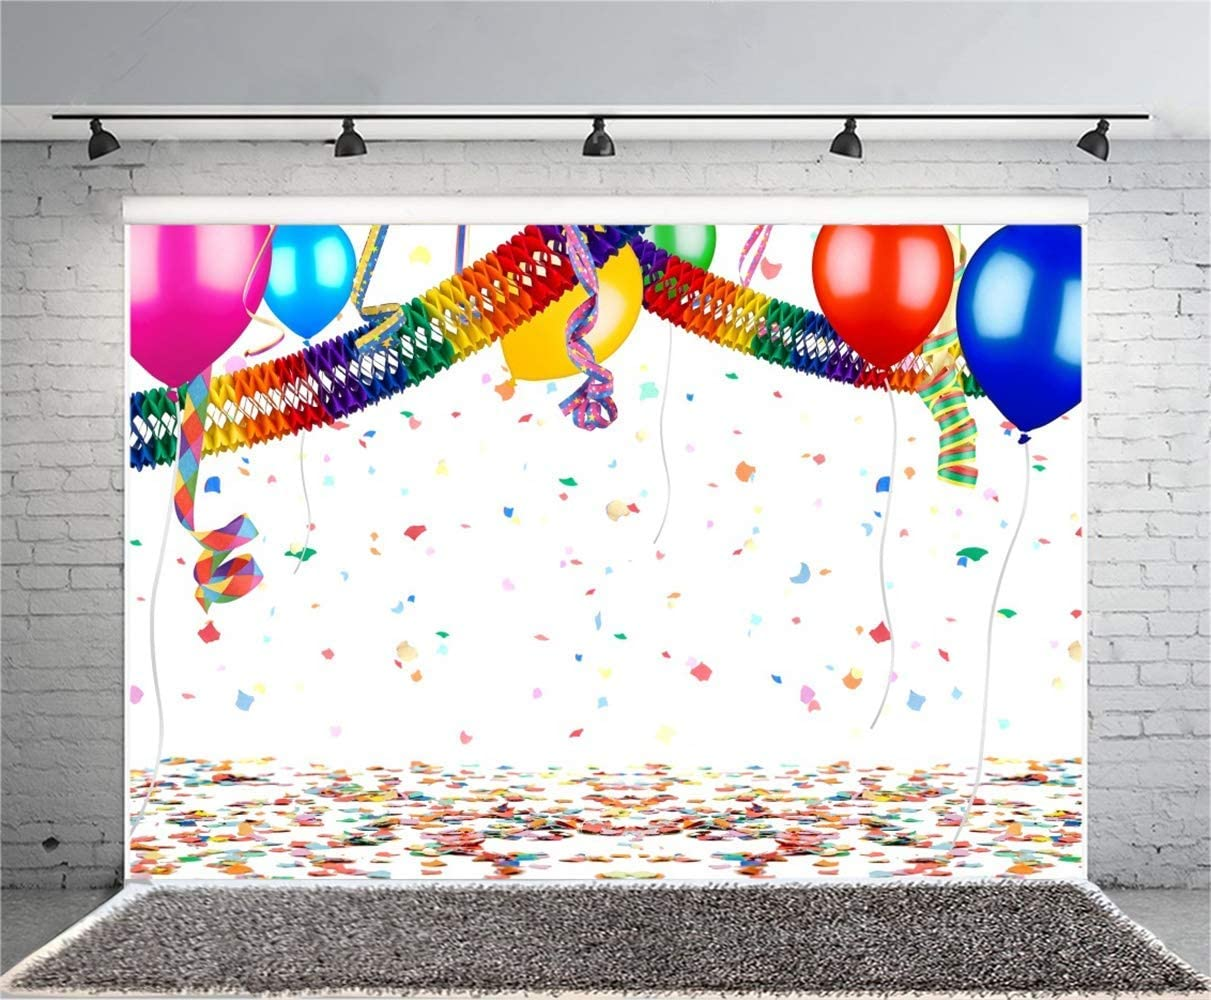 Ugly Sweater Party Polyester Photography Background 10x6.5ft Colorful Festival Garland Streamers Balloons Carnival Birthday Party Backdrop New Year Celebration Wallpaper